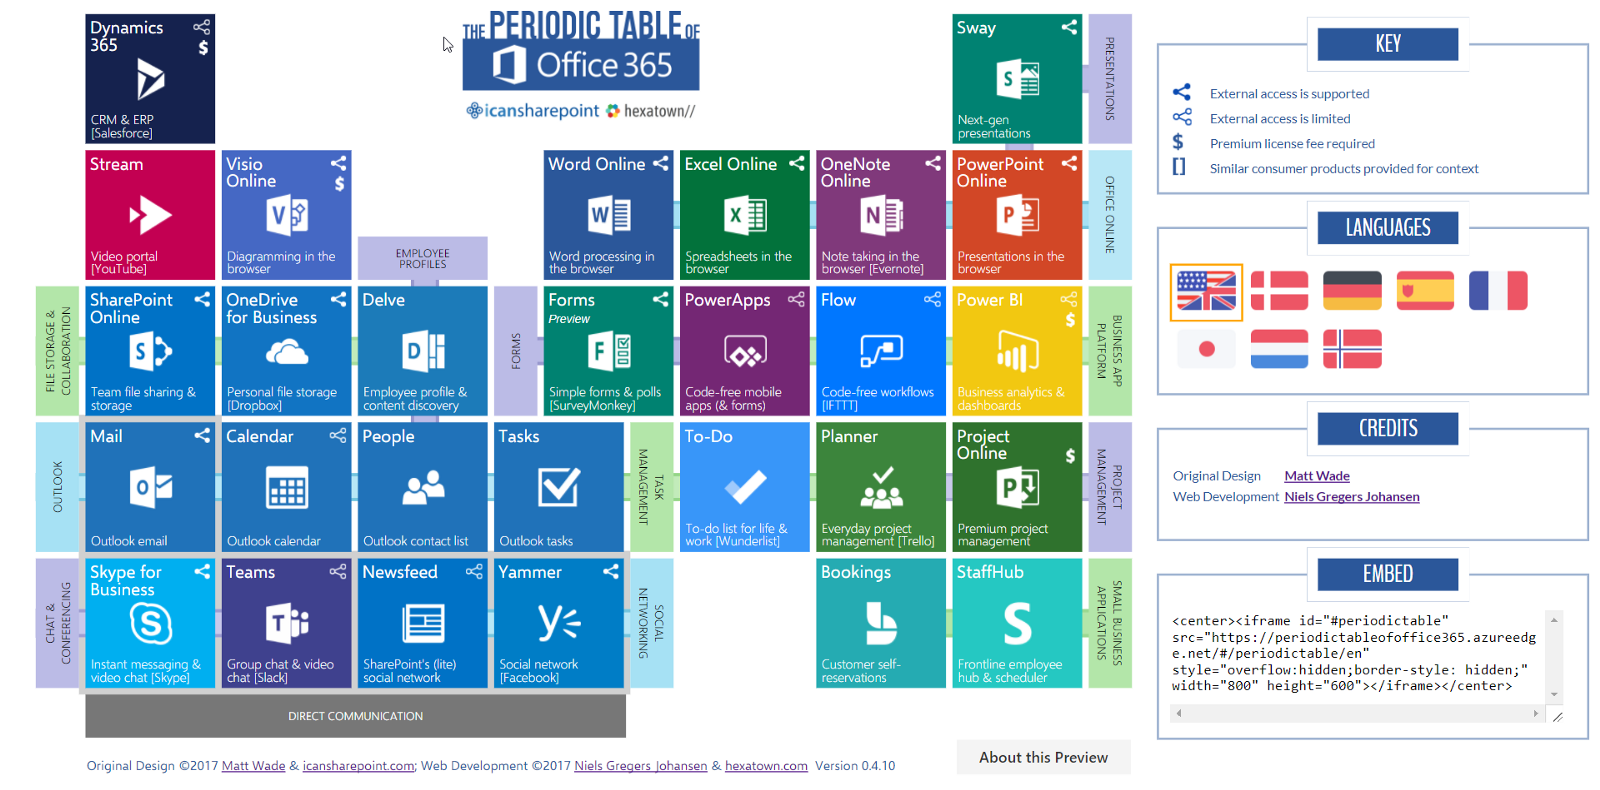 Quickly understand what office 365 is hexatownblog periodic table of office 365 urtaz